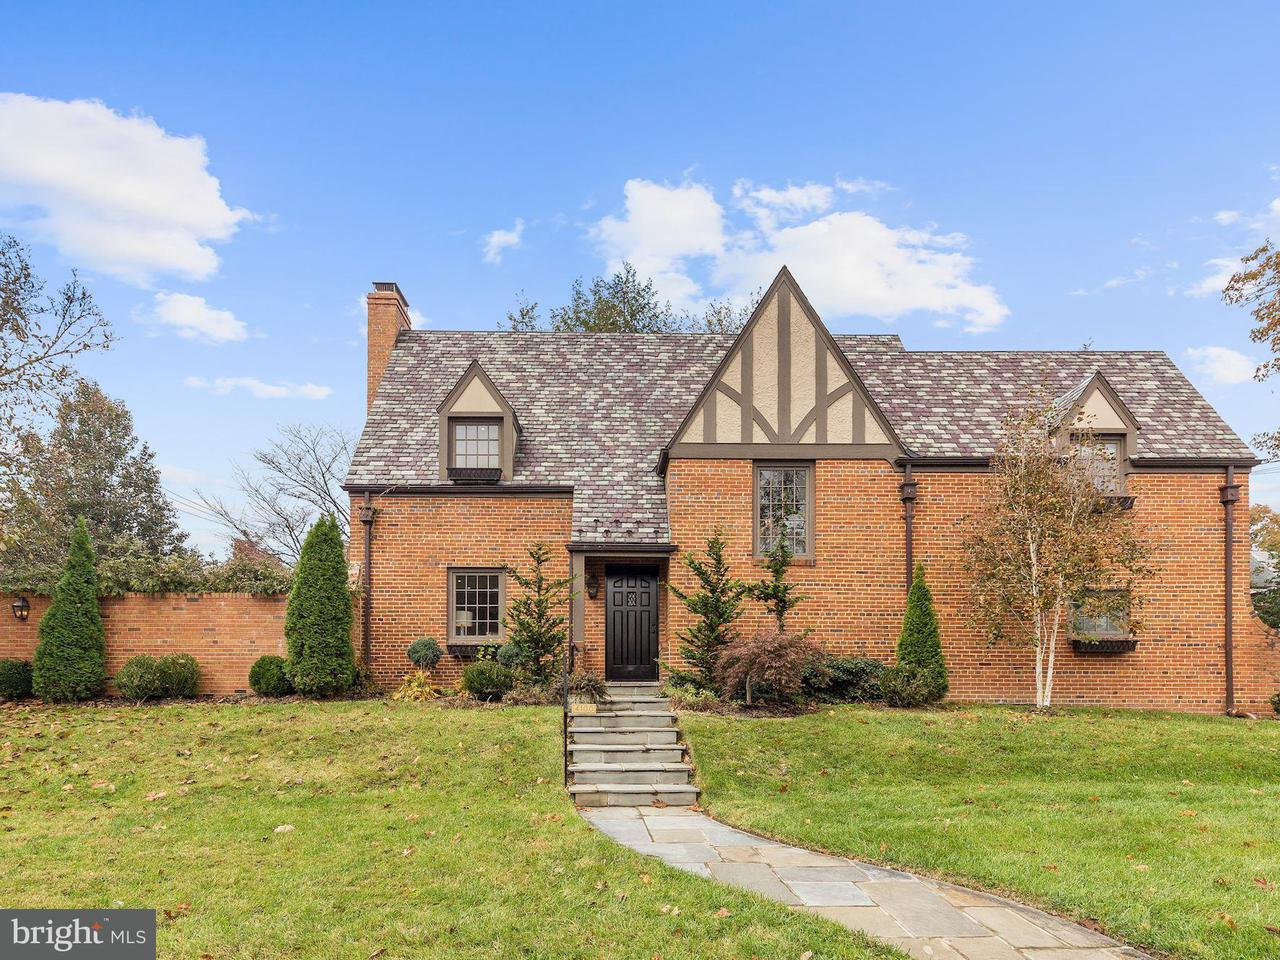 Single Family Home for Sale at 4100 49TH ST NW 4100 49TH ST NW Washington, District Of Columbia 20016 United States